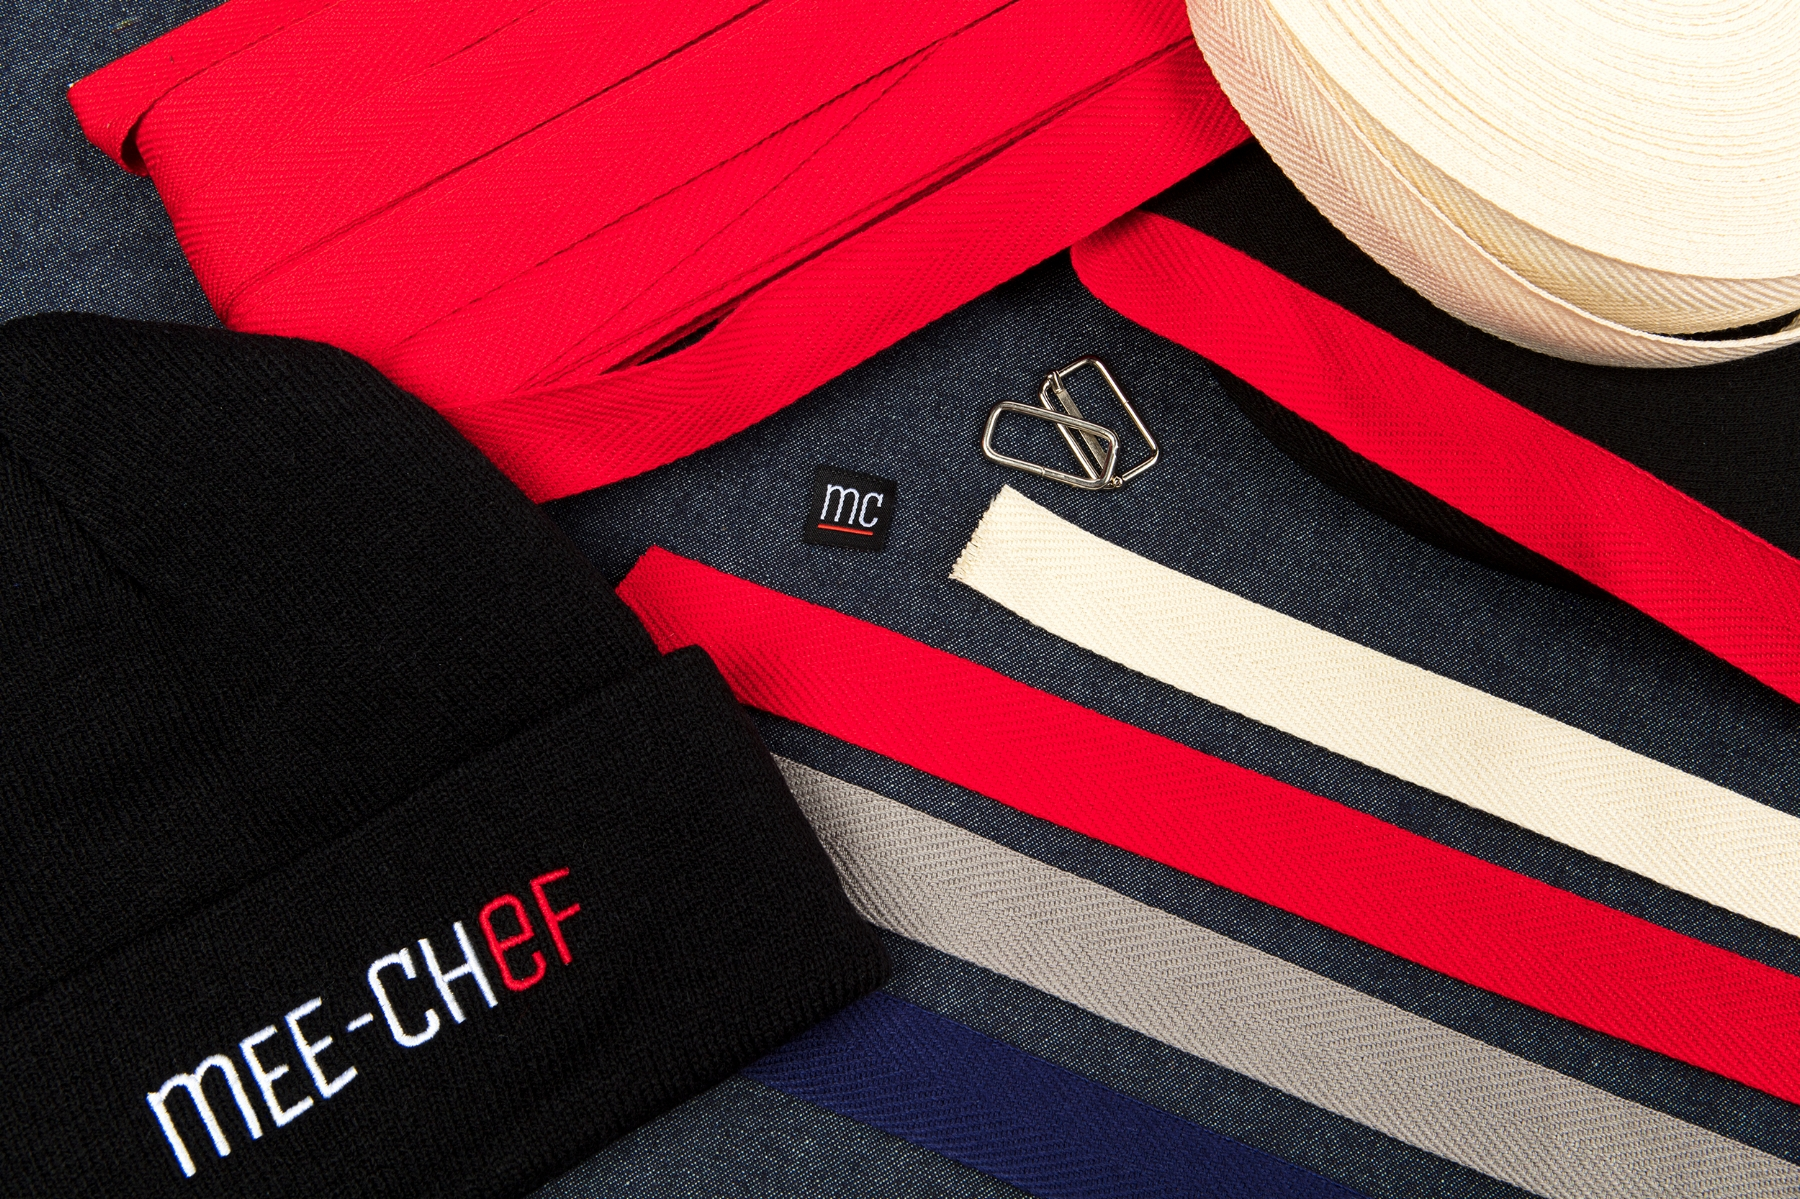 MEE-CHef Commitment:   Anything from different coloured tapes to a unique buckle you're dying to have!  MEE-CHef will do its best to go the extra mile!  We try to do the best we can do, so you can look the best doing what you love to do.        - Team MEE-CHef